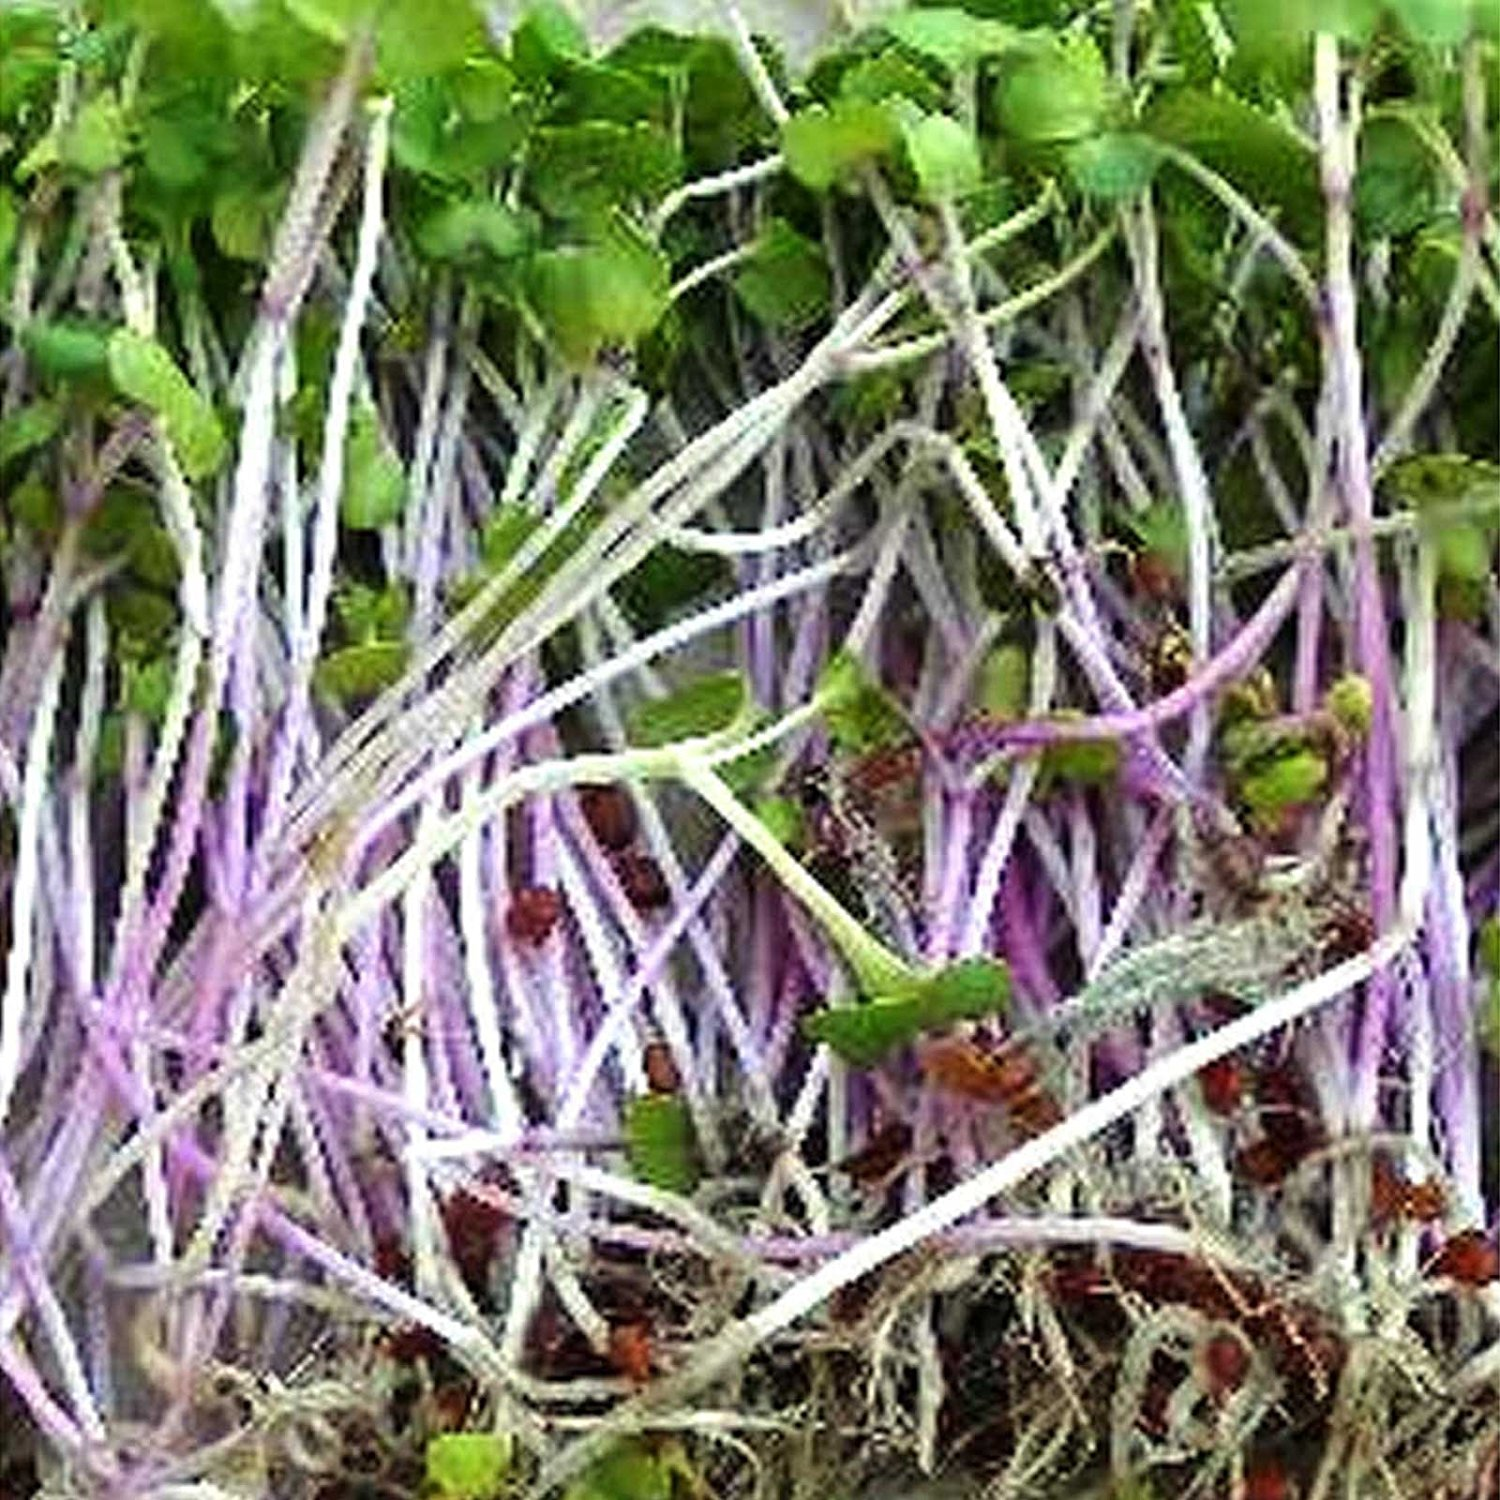 Triton Purple Radish Sprouting Seeds 1 Lb Seed Pouch Non-GMO Purple, Red, Green Sprouts- Sprout and Microgreen Radishes, Radish Seeds .., By... by